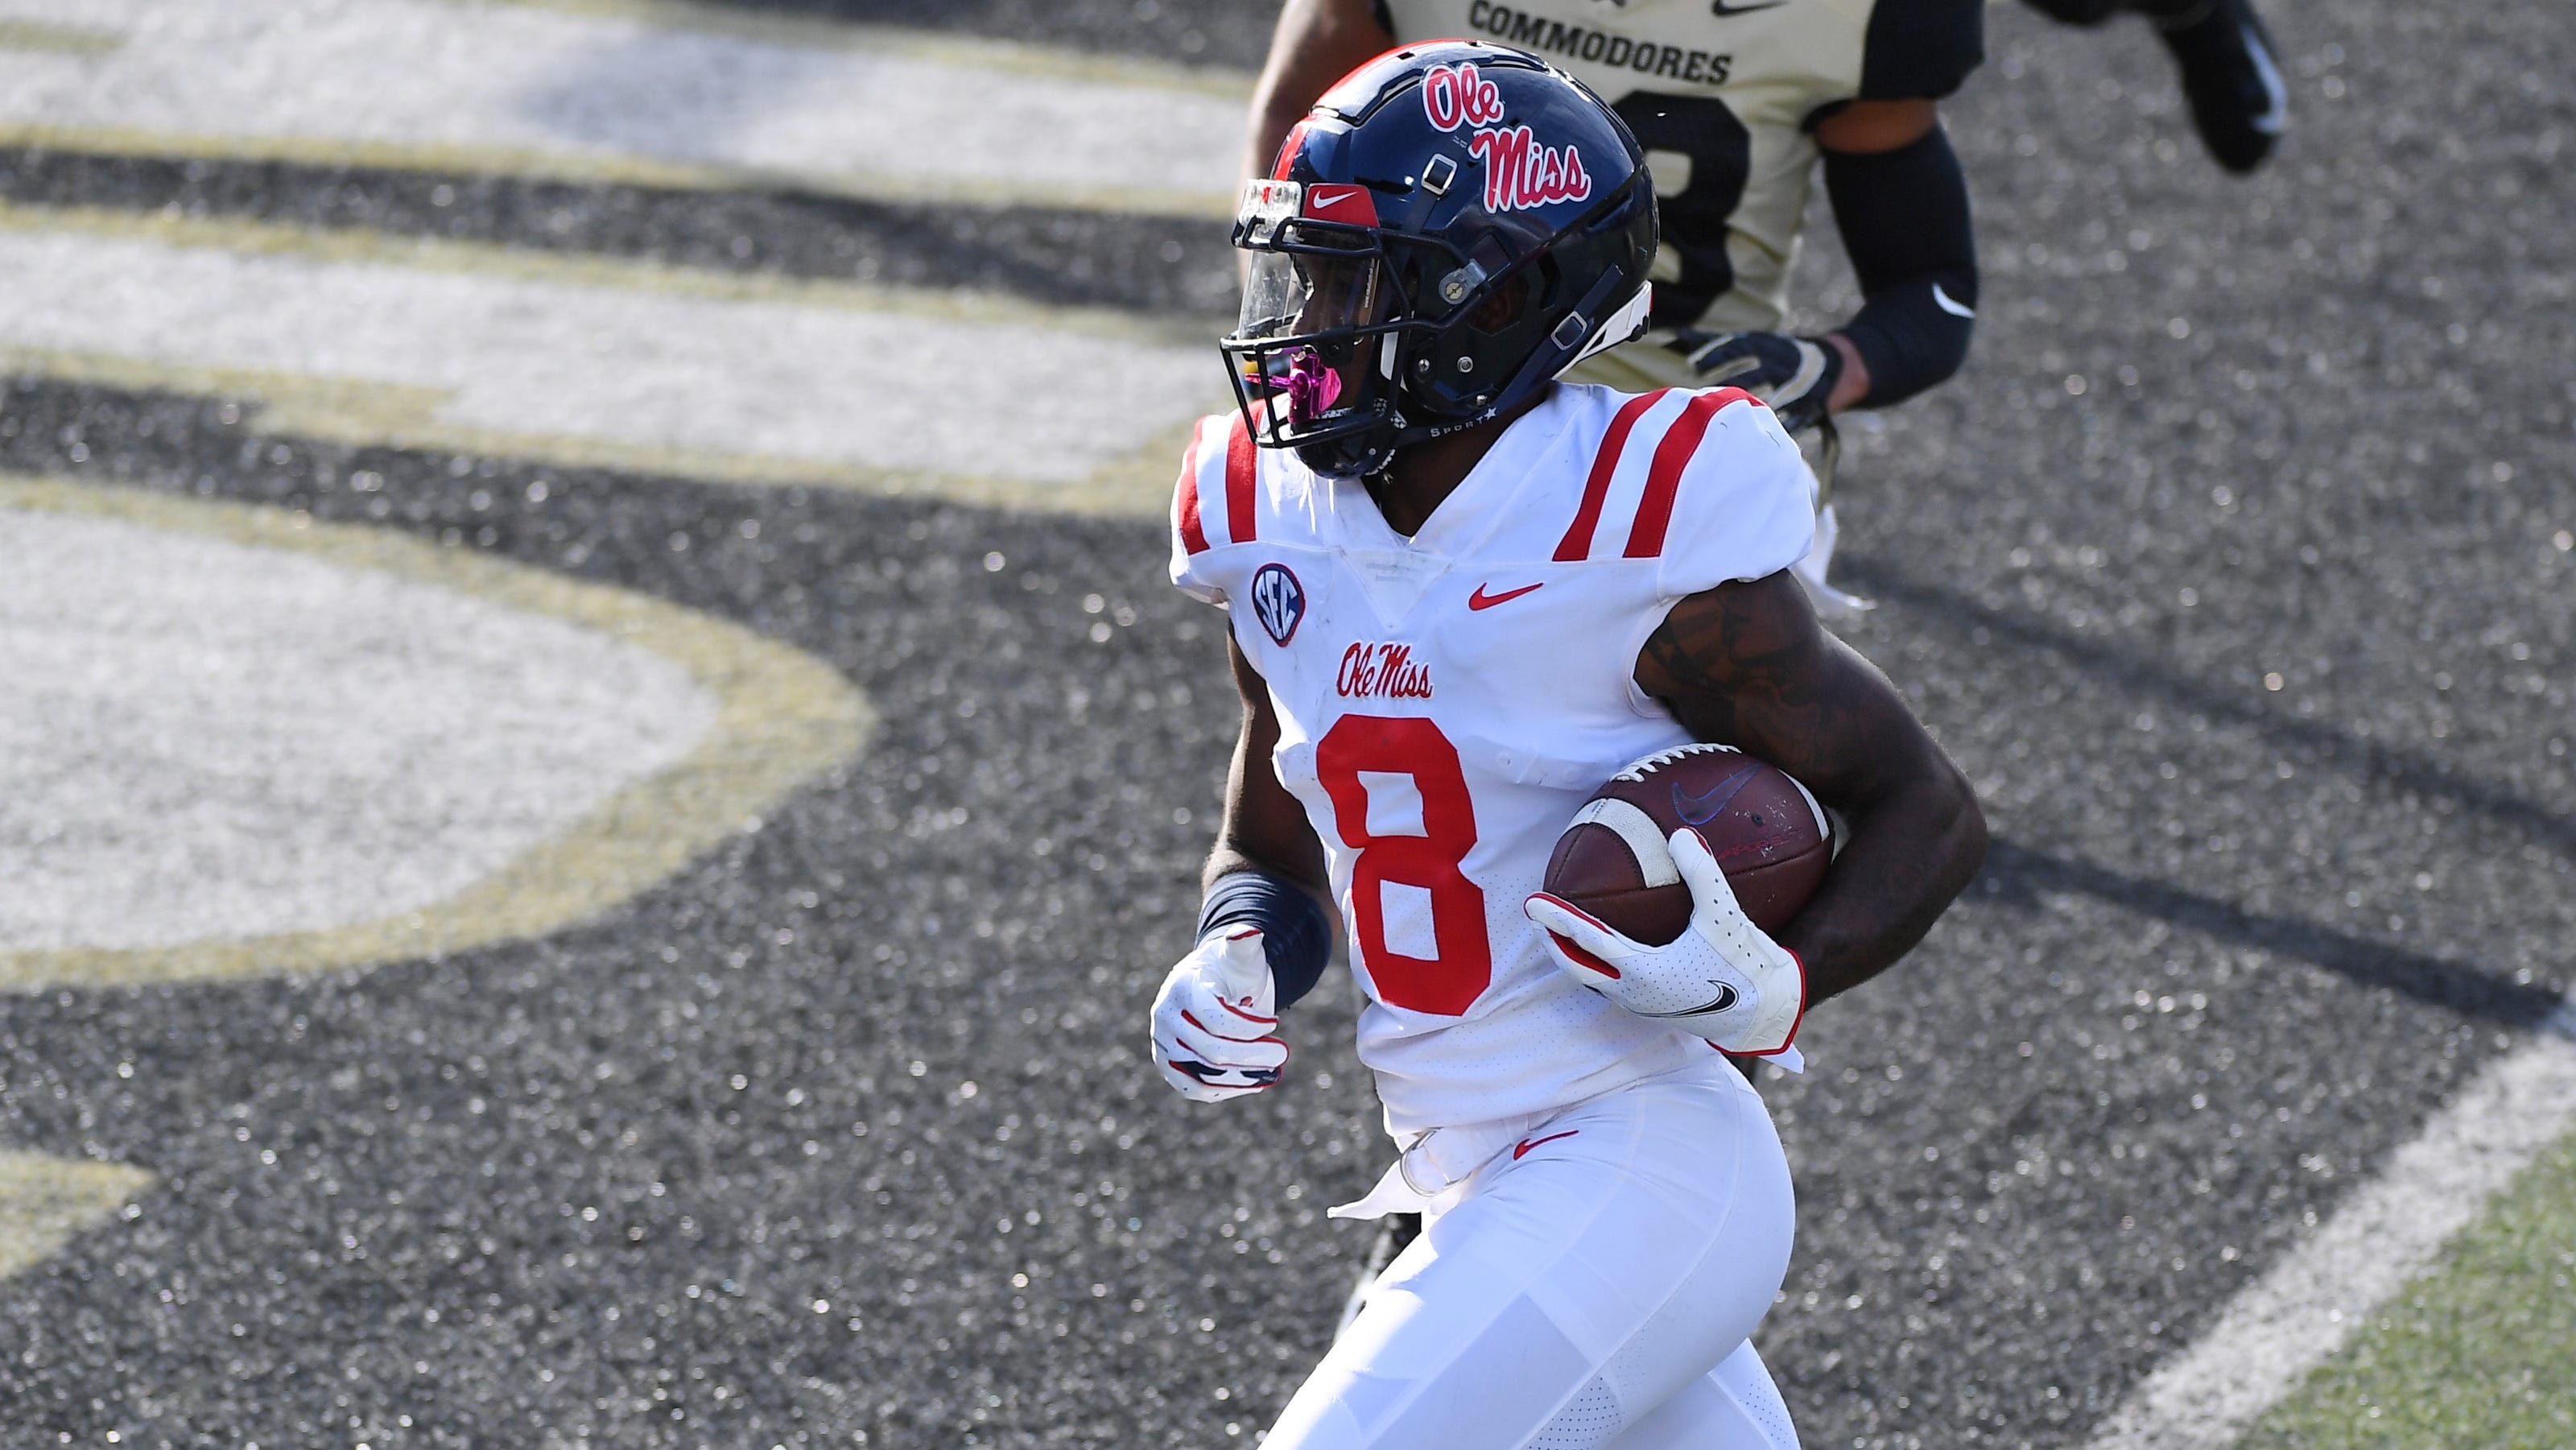 Ole Miss football is a double-digit favorite to beat South Carolina. Here's why.